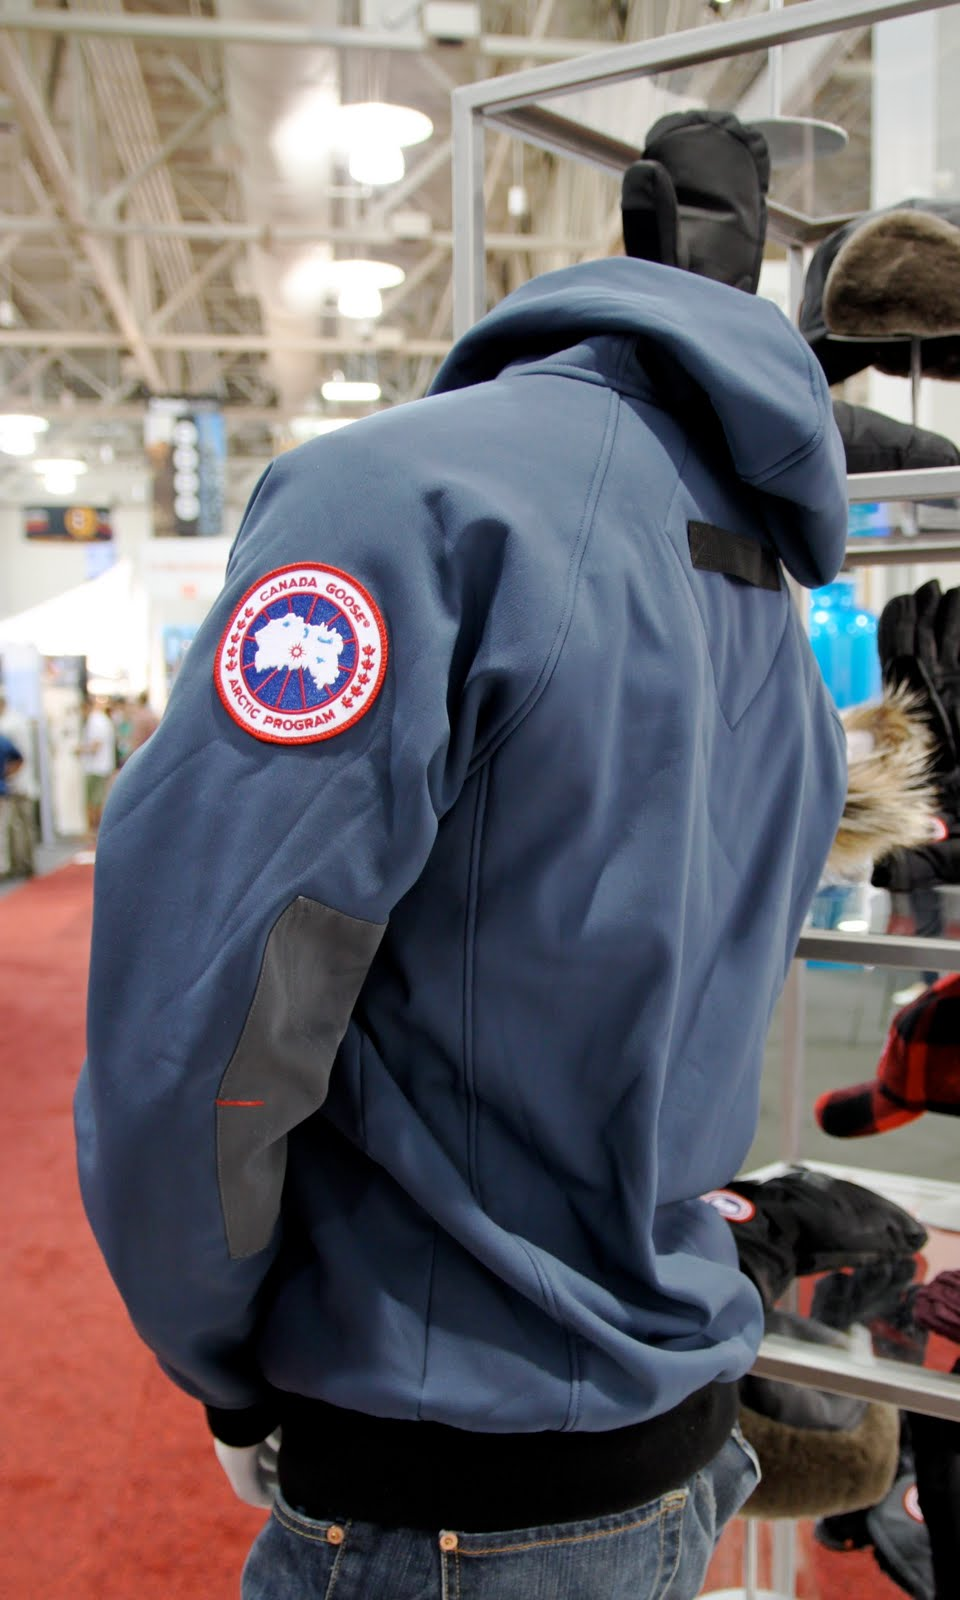 Canada Goose replica - LYRA MAG.: CANADA GOOSE LUXURY OUTERWEAR Men's & Women's 2010/2011